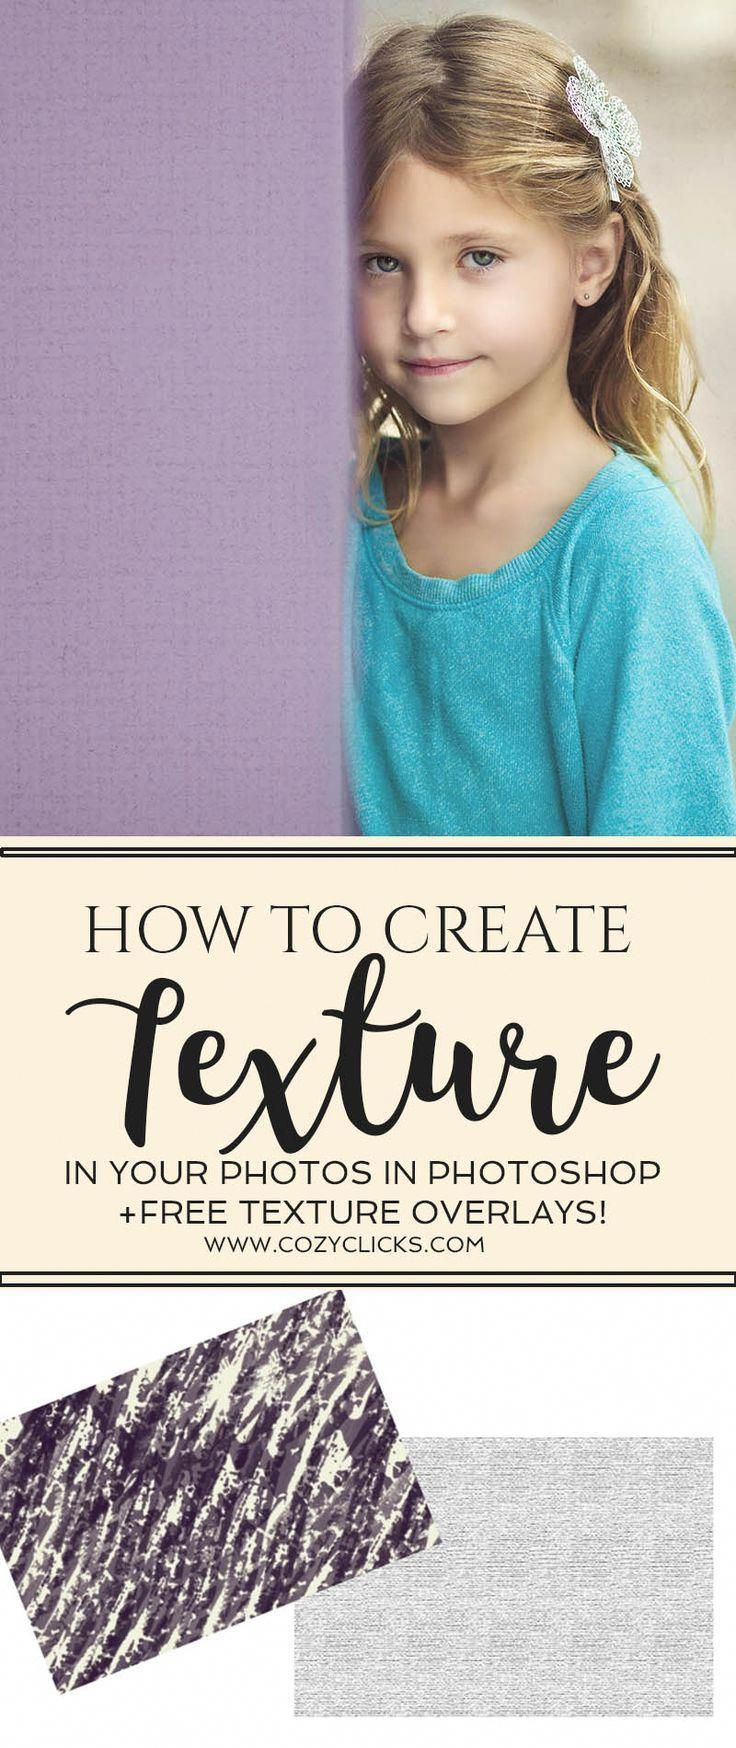 How To Create Texture In Your Photos In + FREE